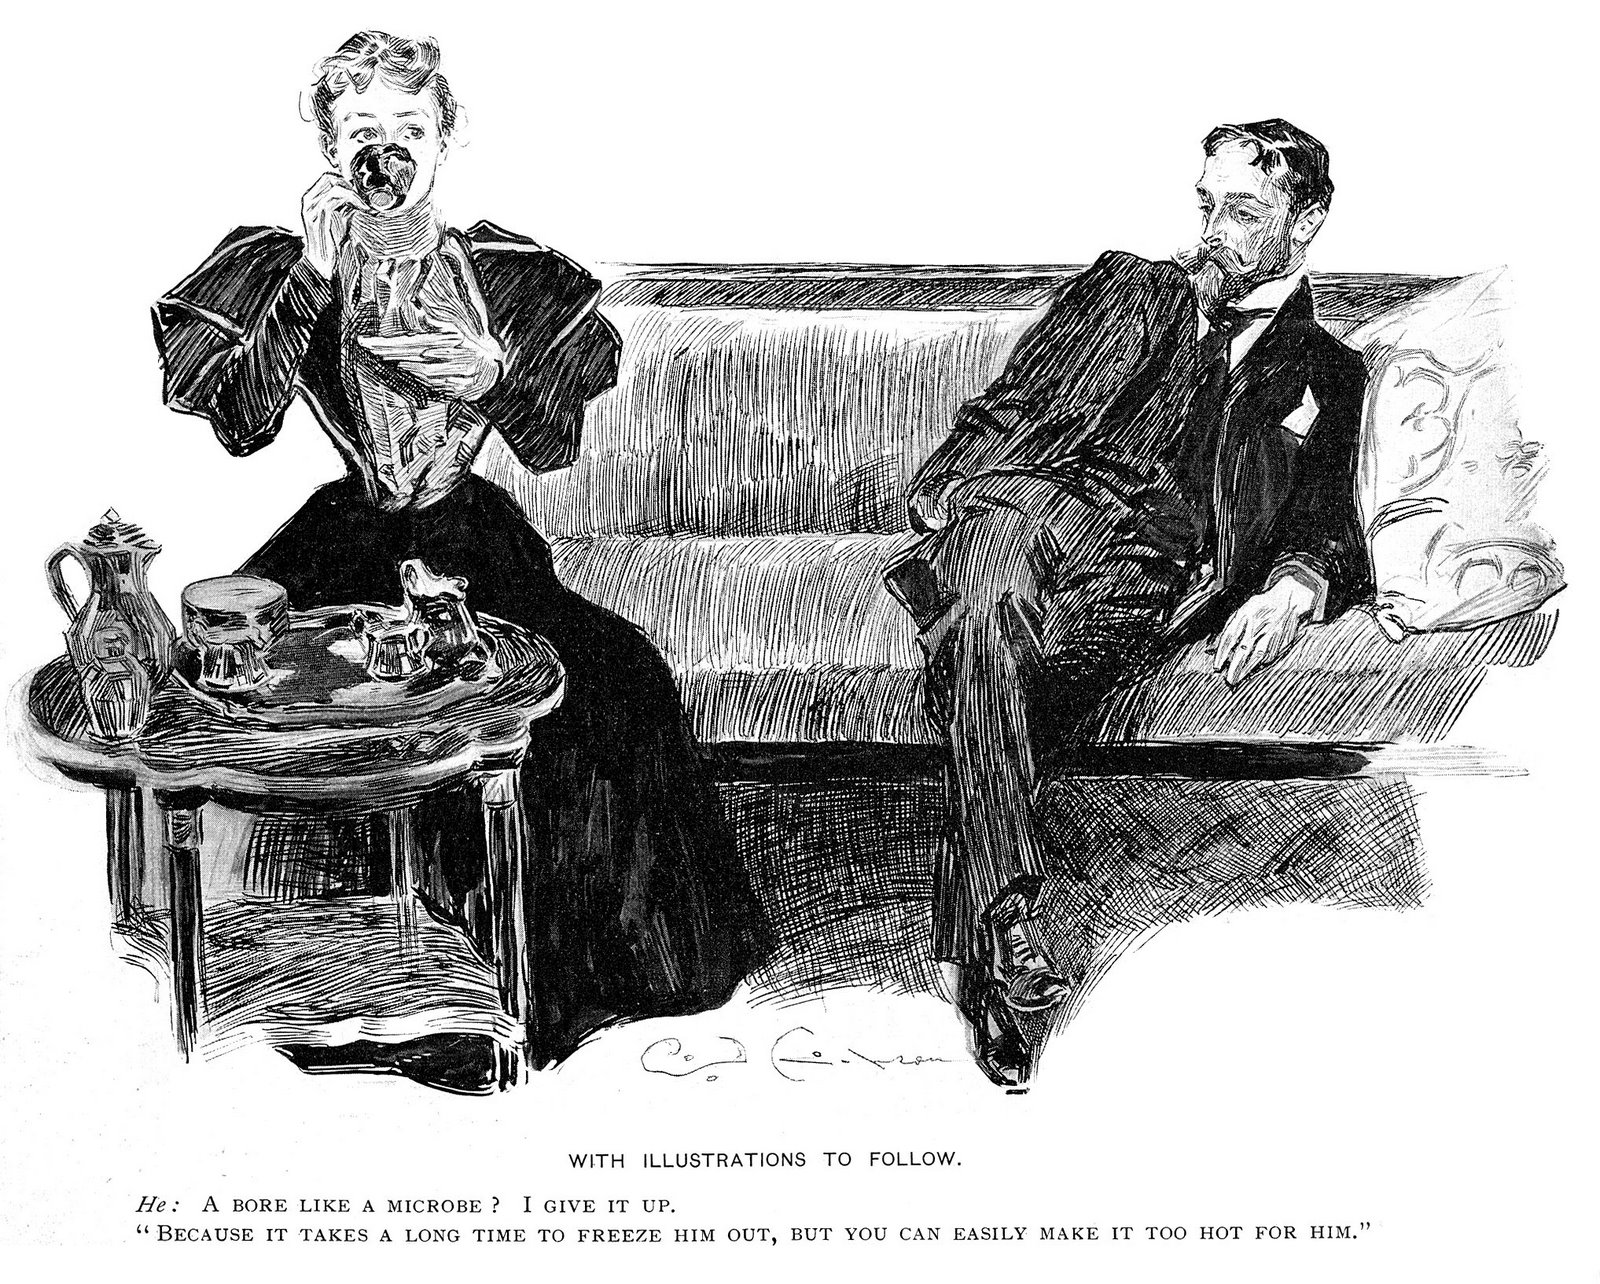 south gibson girls Ap us history chapters 24 and 25 vocabulary  gibson girl the personification  stories created by illustrator charles dana gibson during a 20-year period.